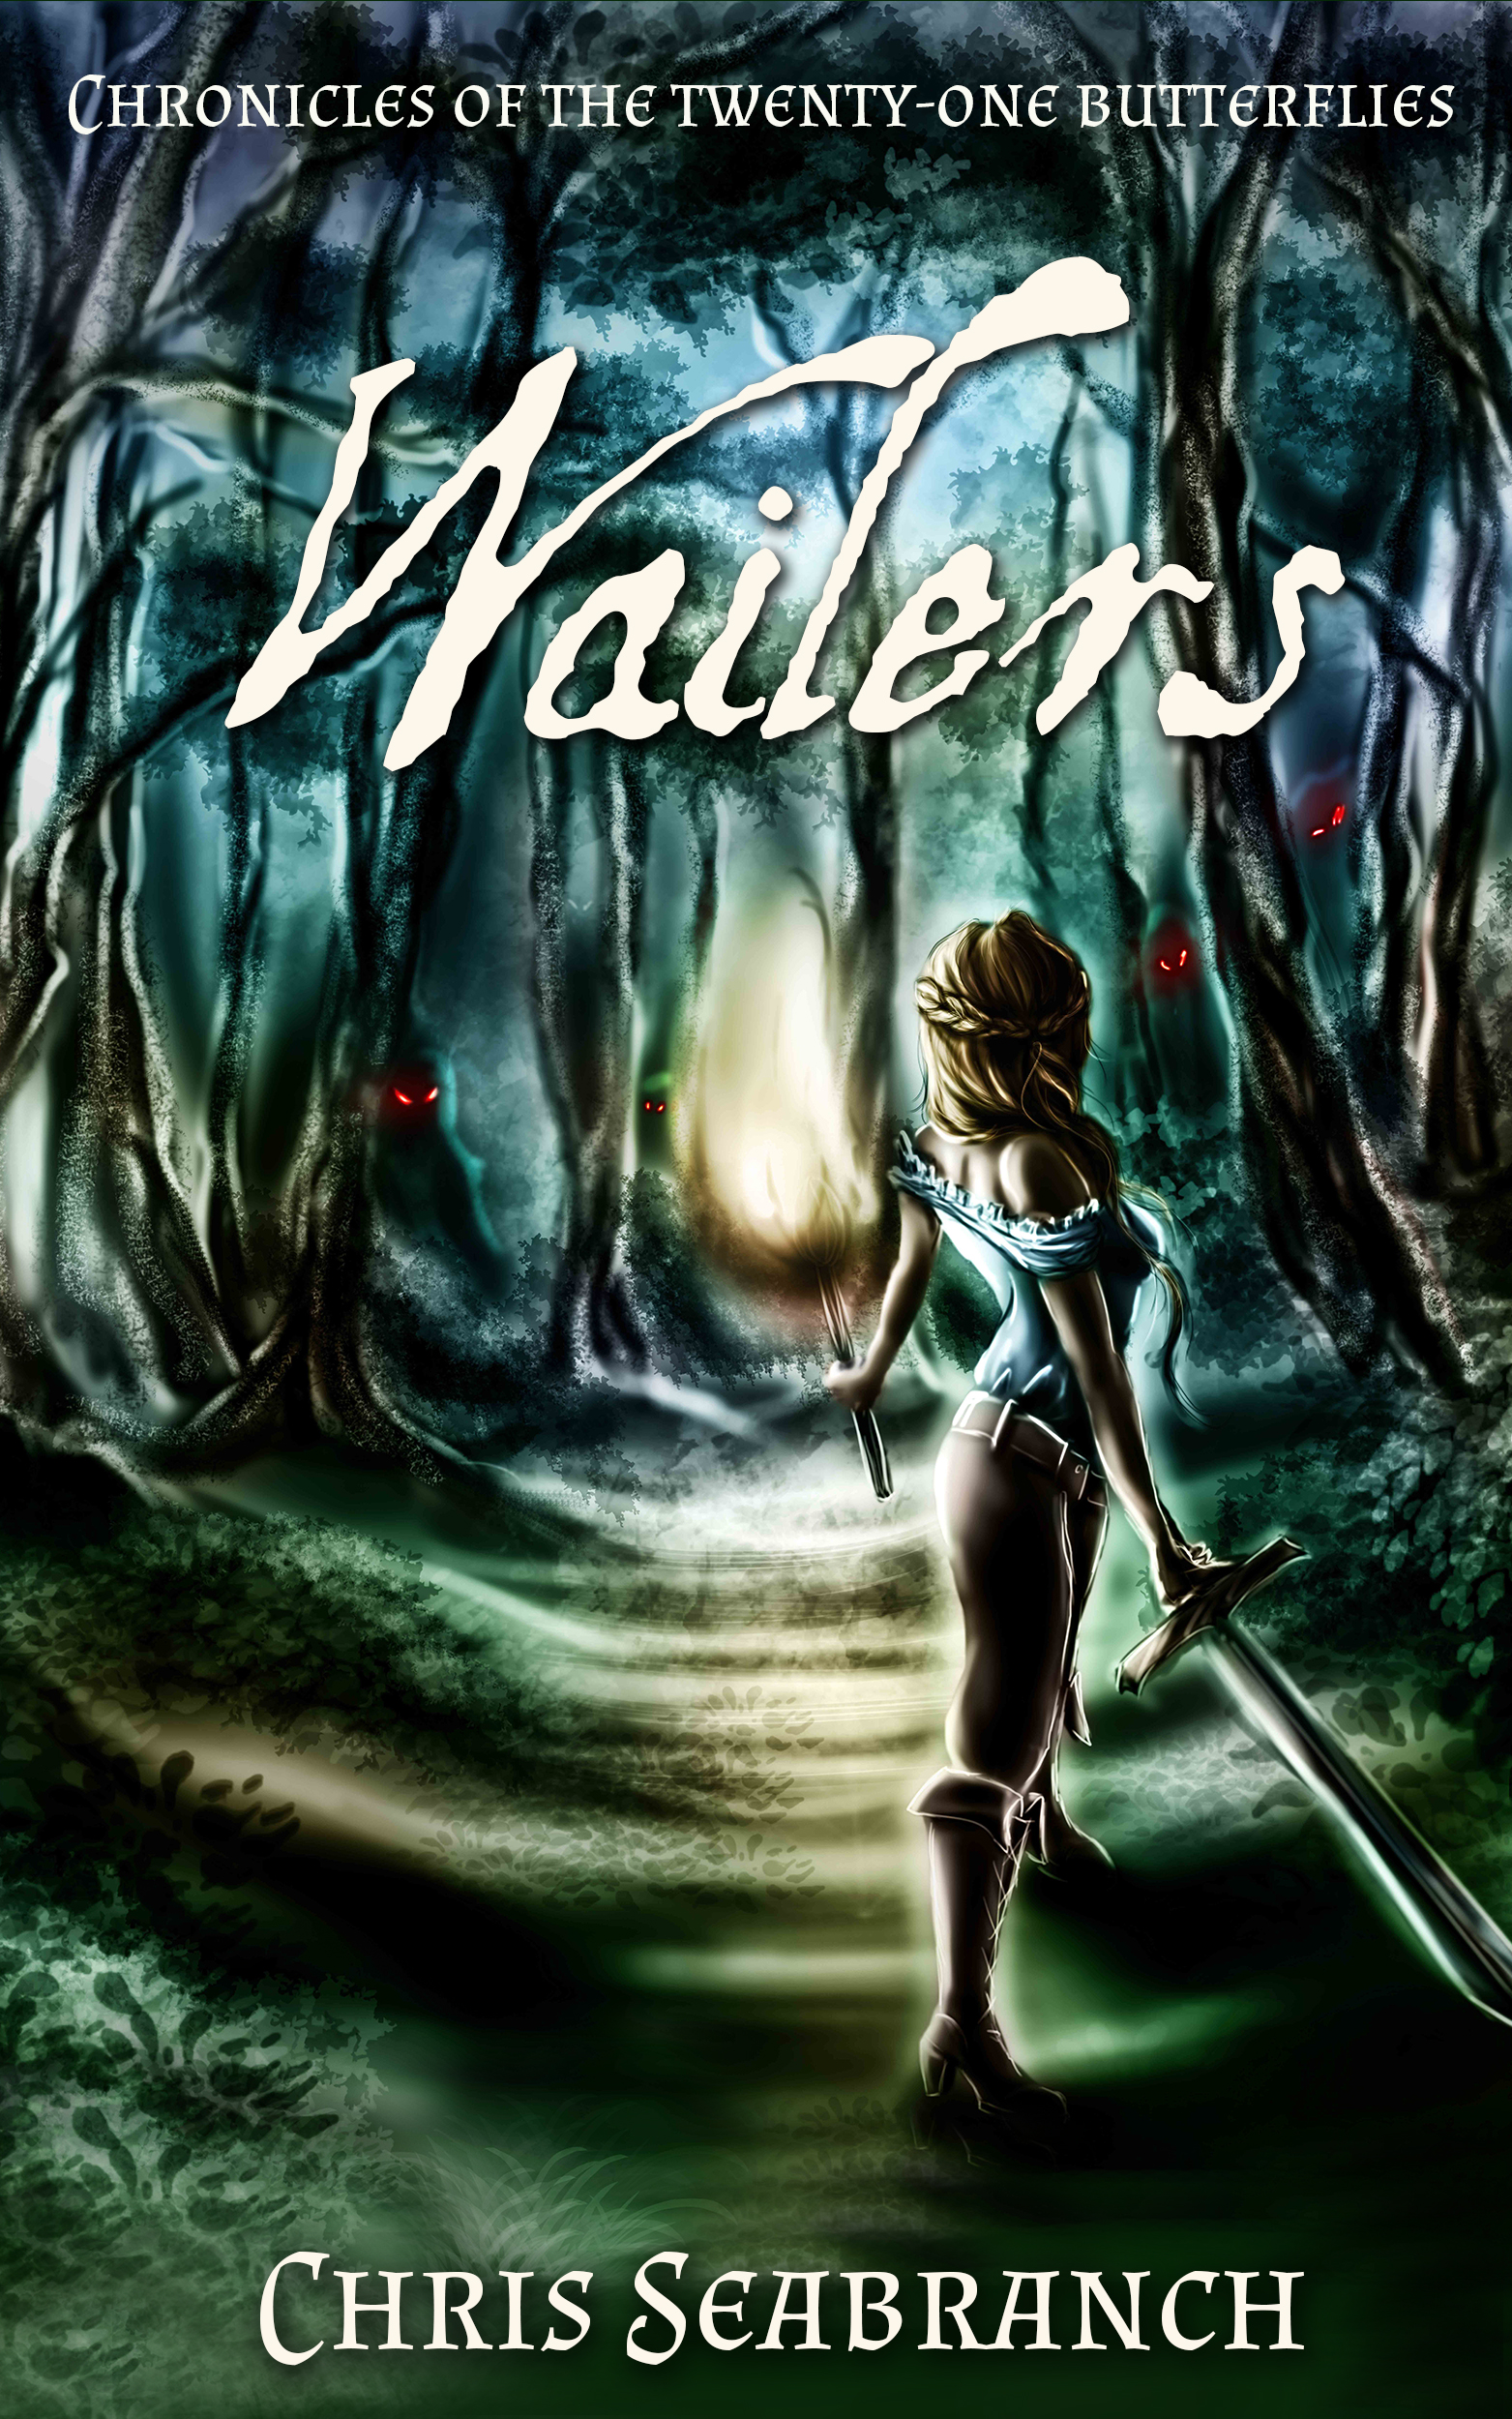 Book 3 (Wailers) is out